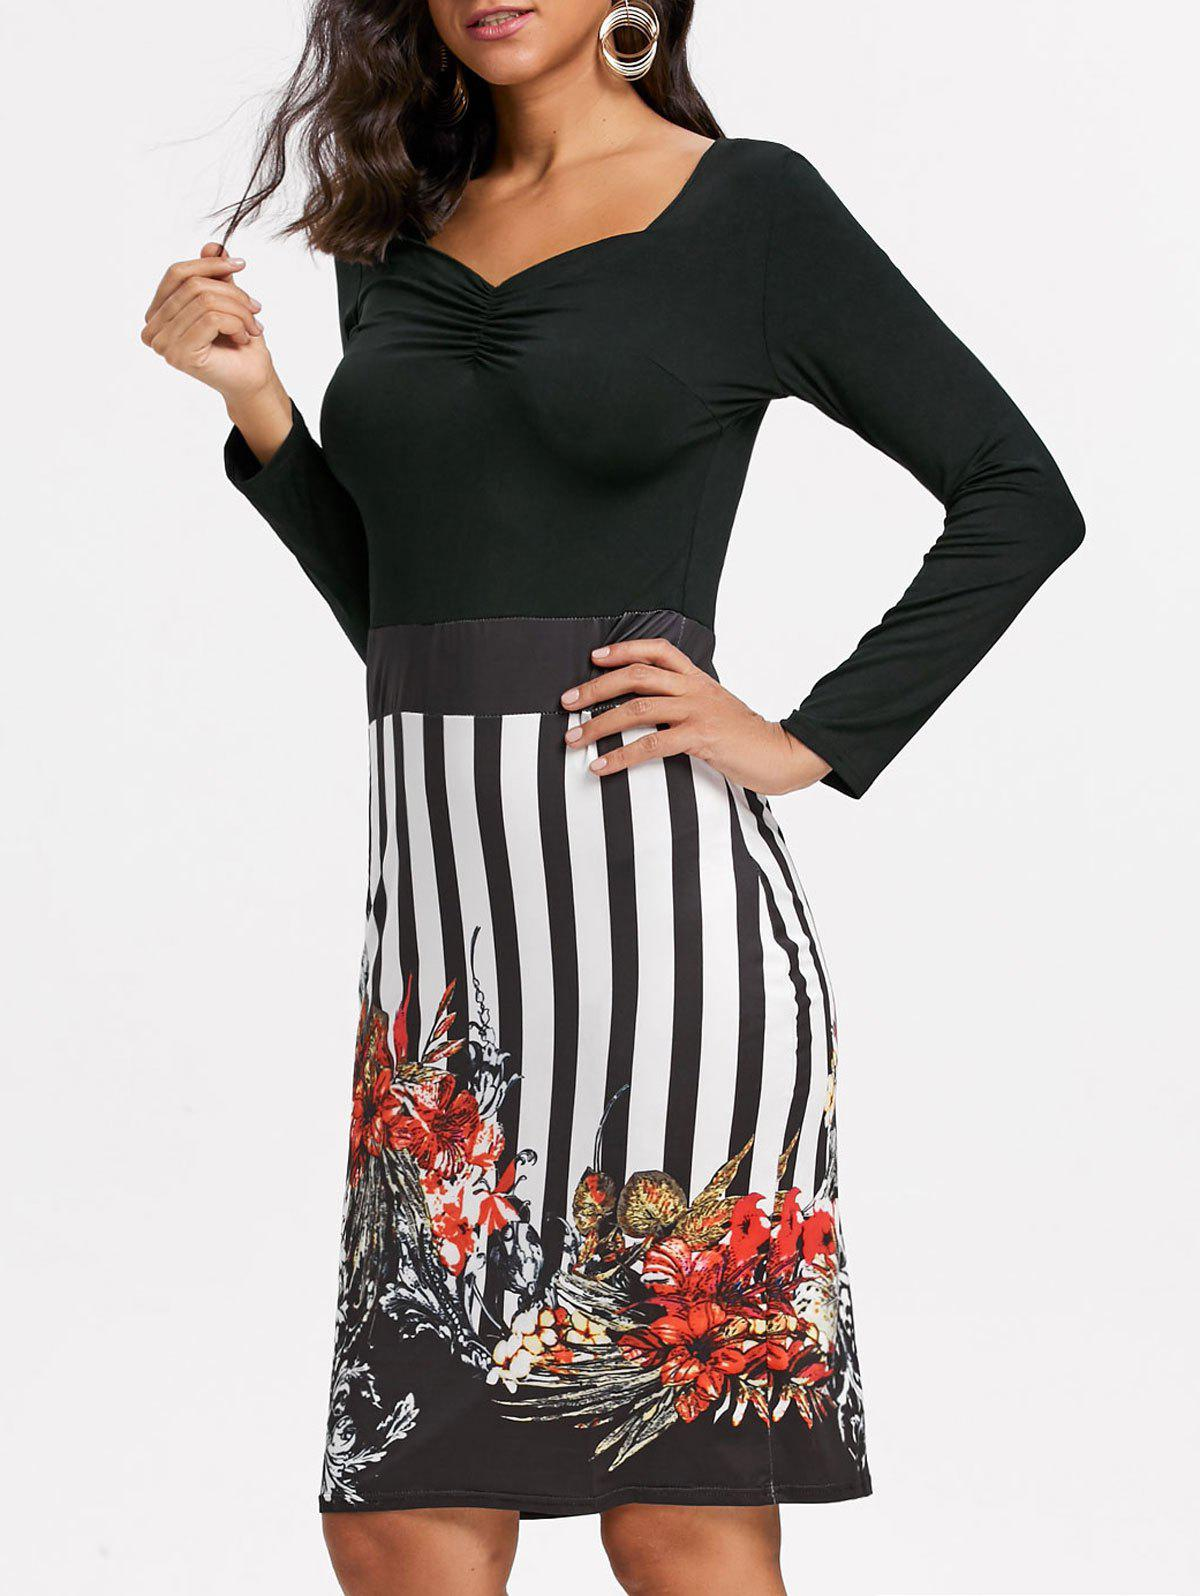 Stripe Floral Print Bodycon Dress - BLACK M